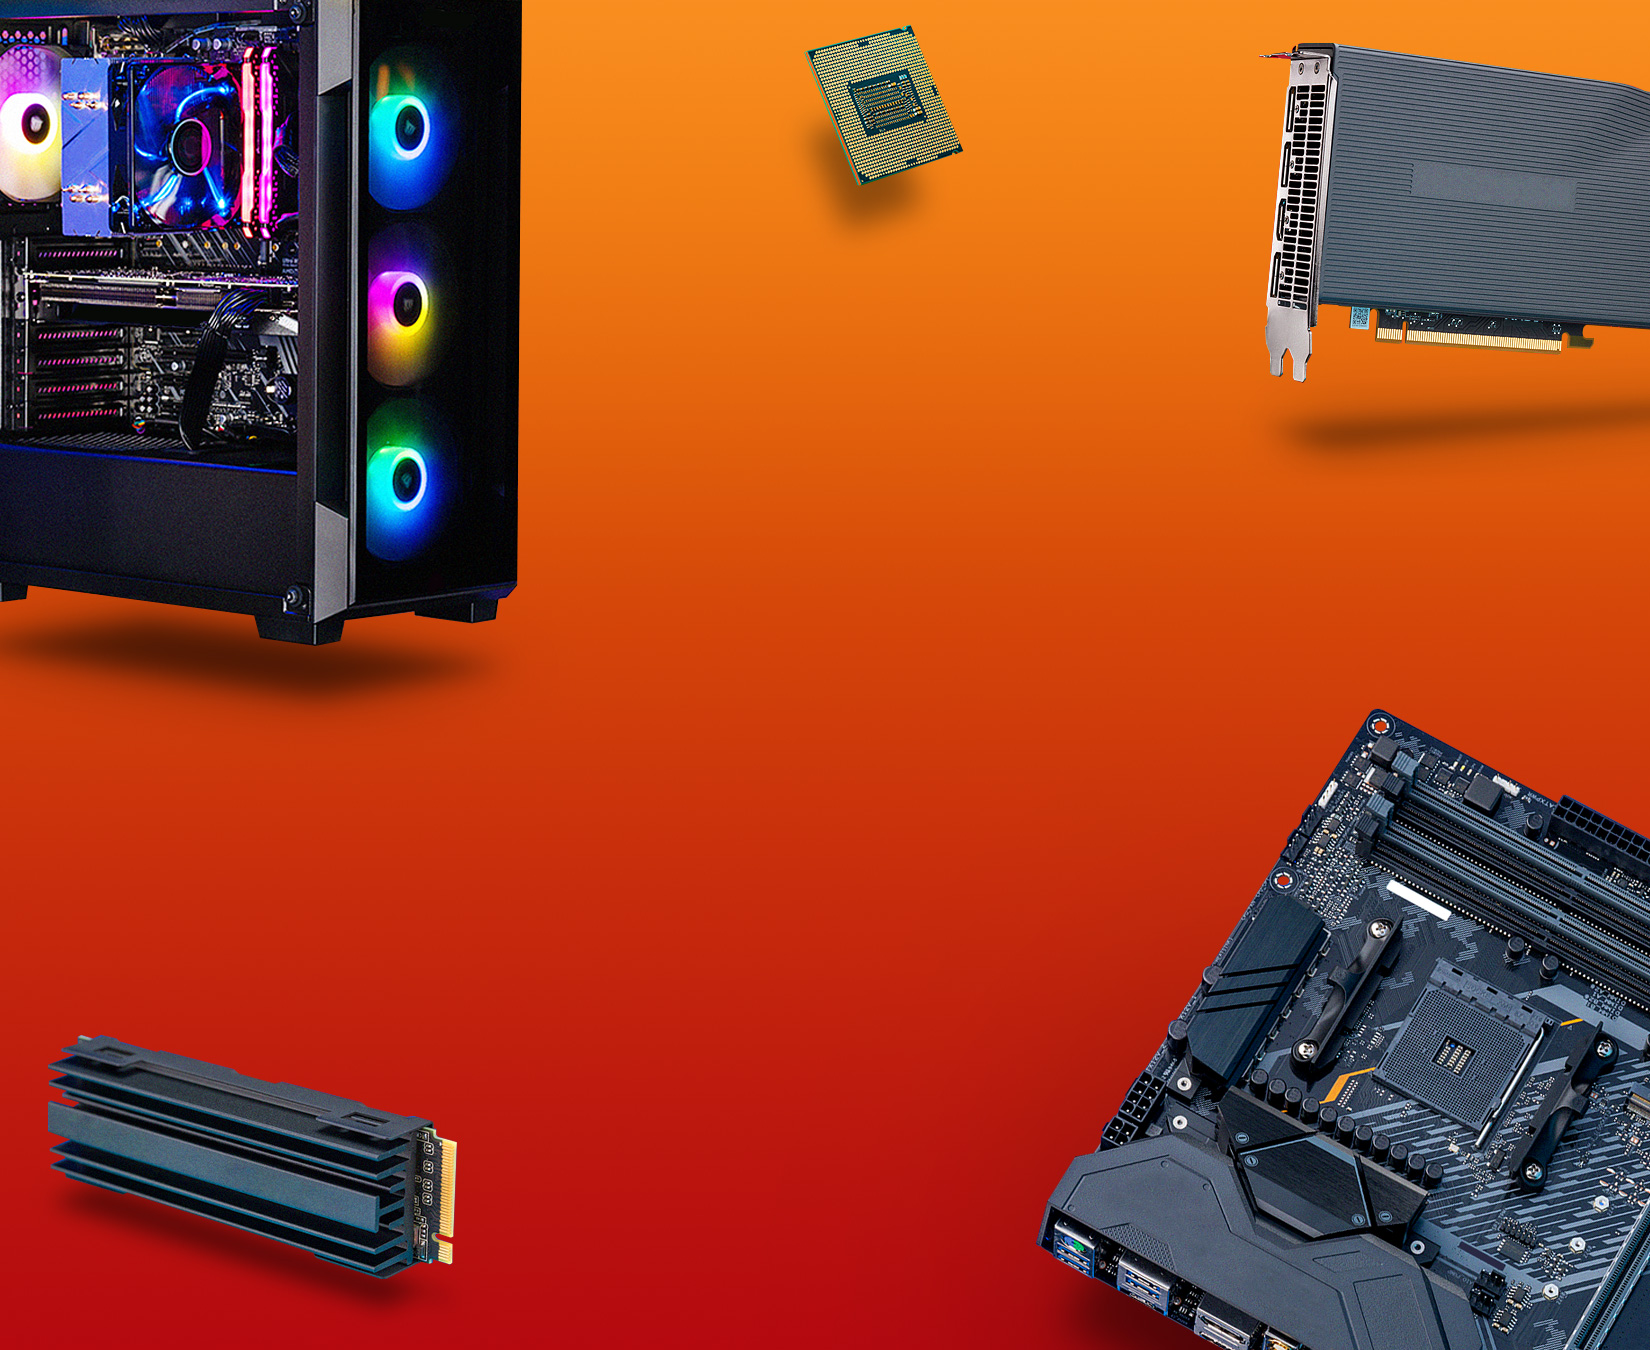 How To Build a PC - Newegg's Step-By-Step Building Guide